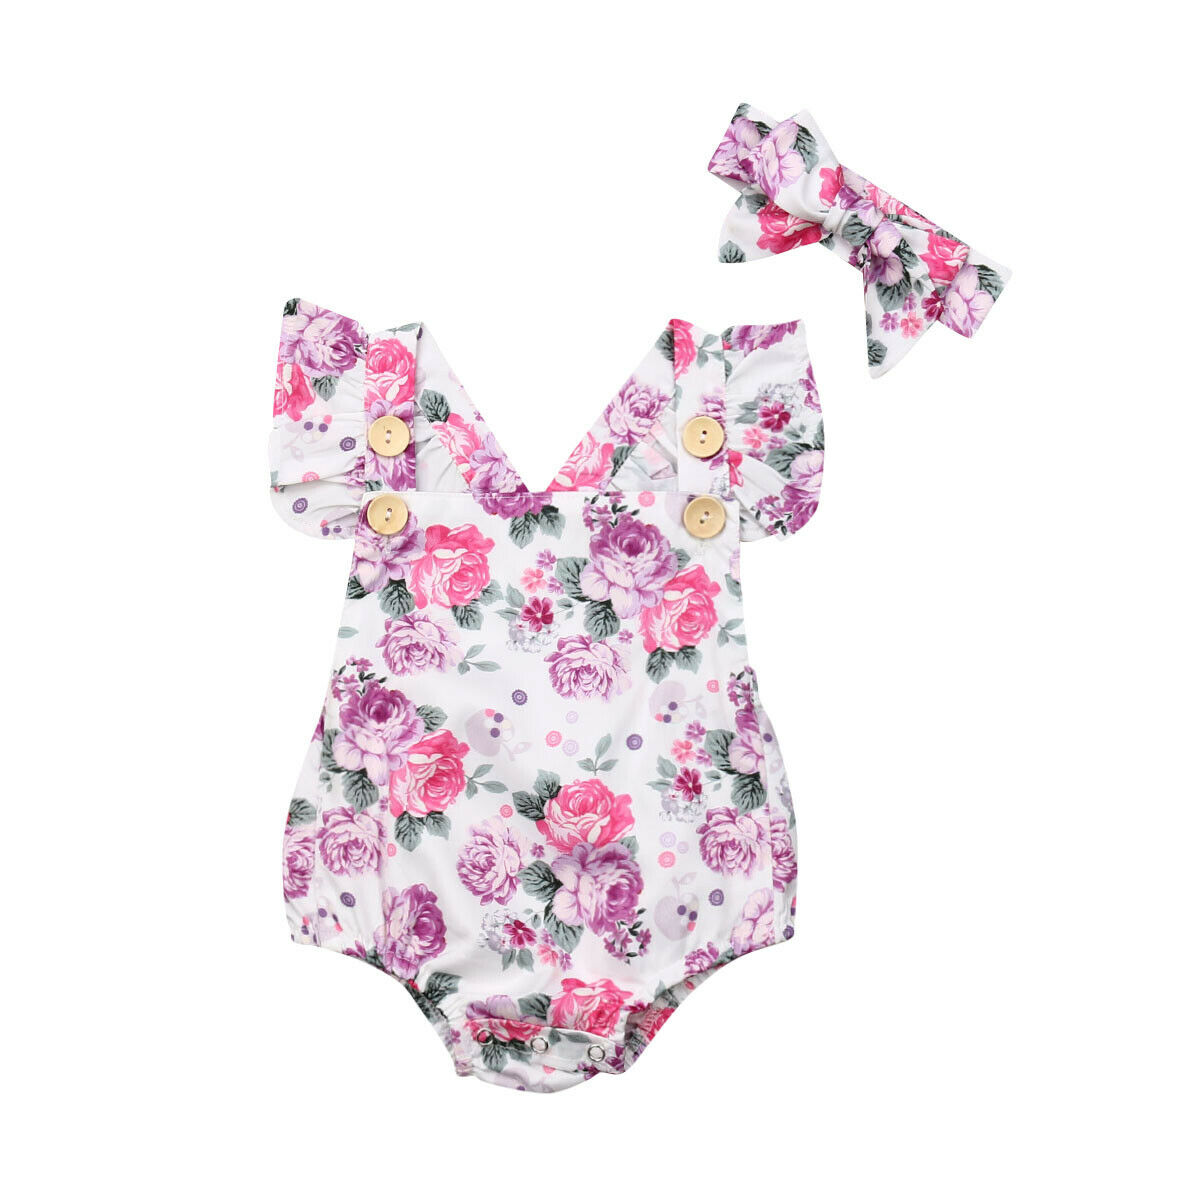 Ruffled Short Sleeve Baby Floral Bodysuit With Headband For Baby Girl